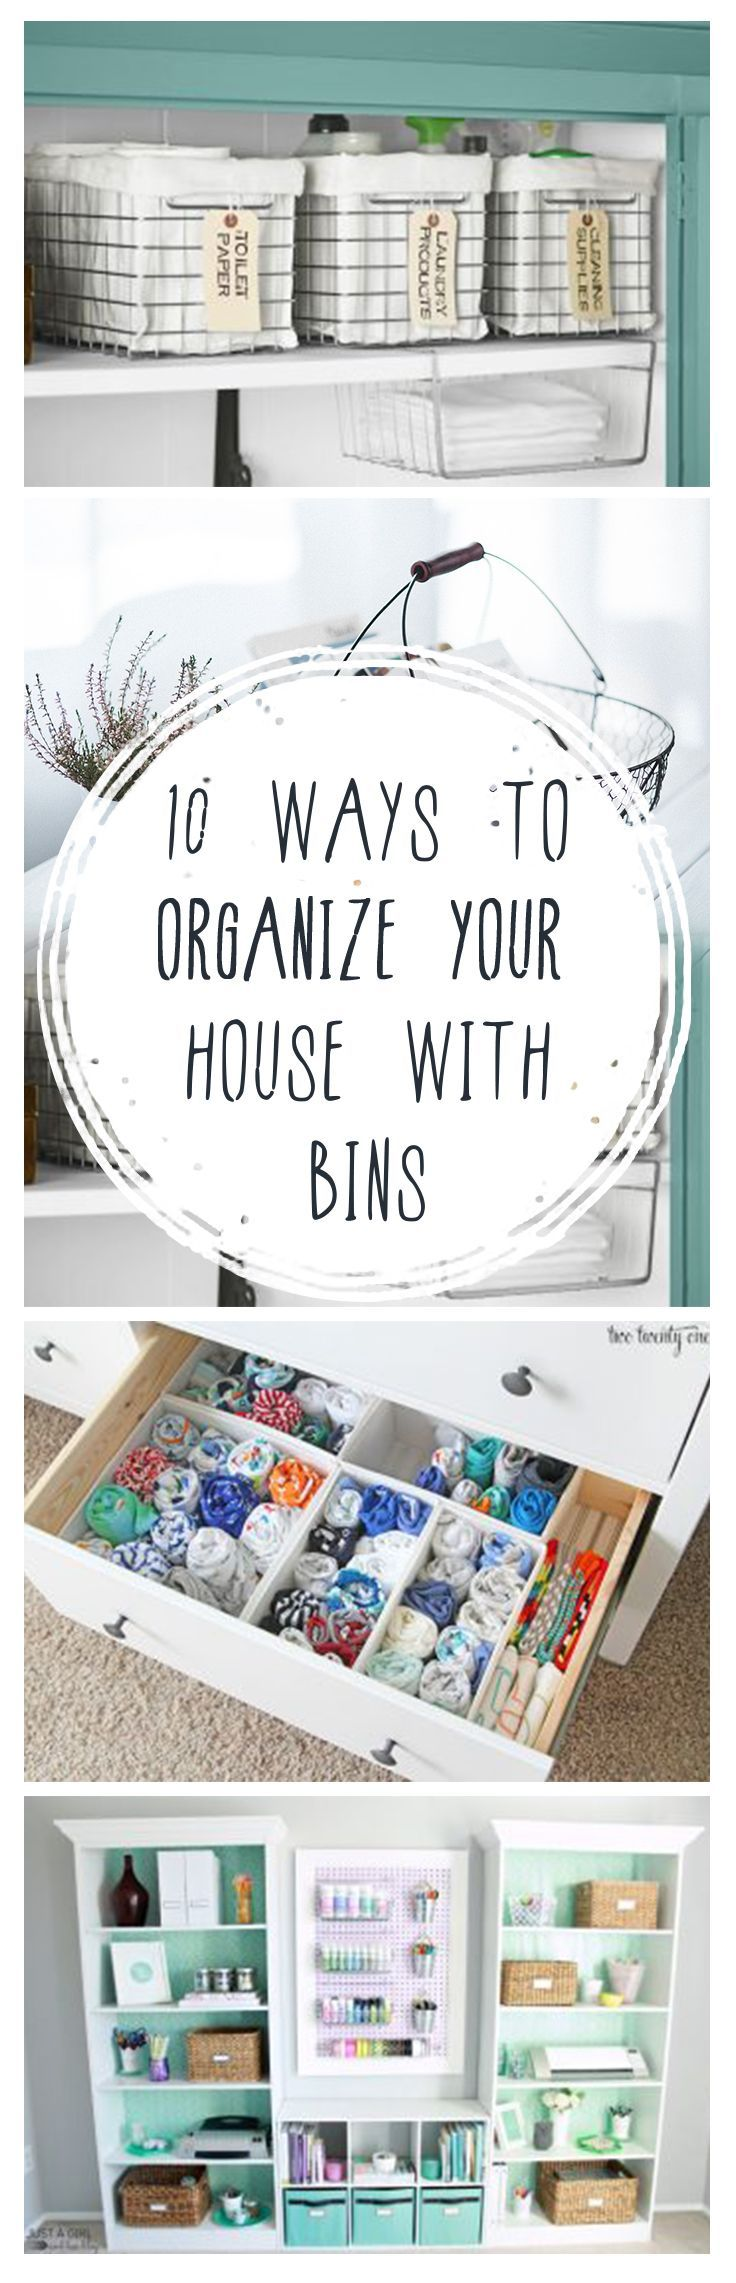 744 best Home Organization images on Pinterest | Organization ideas ...